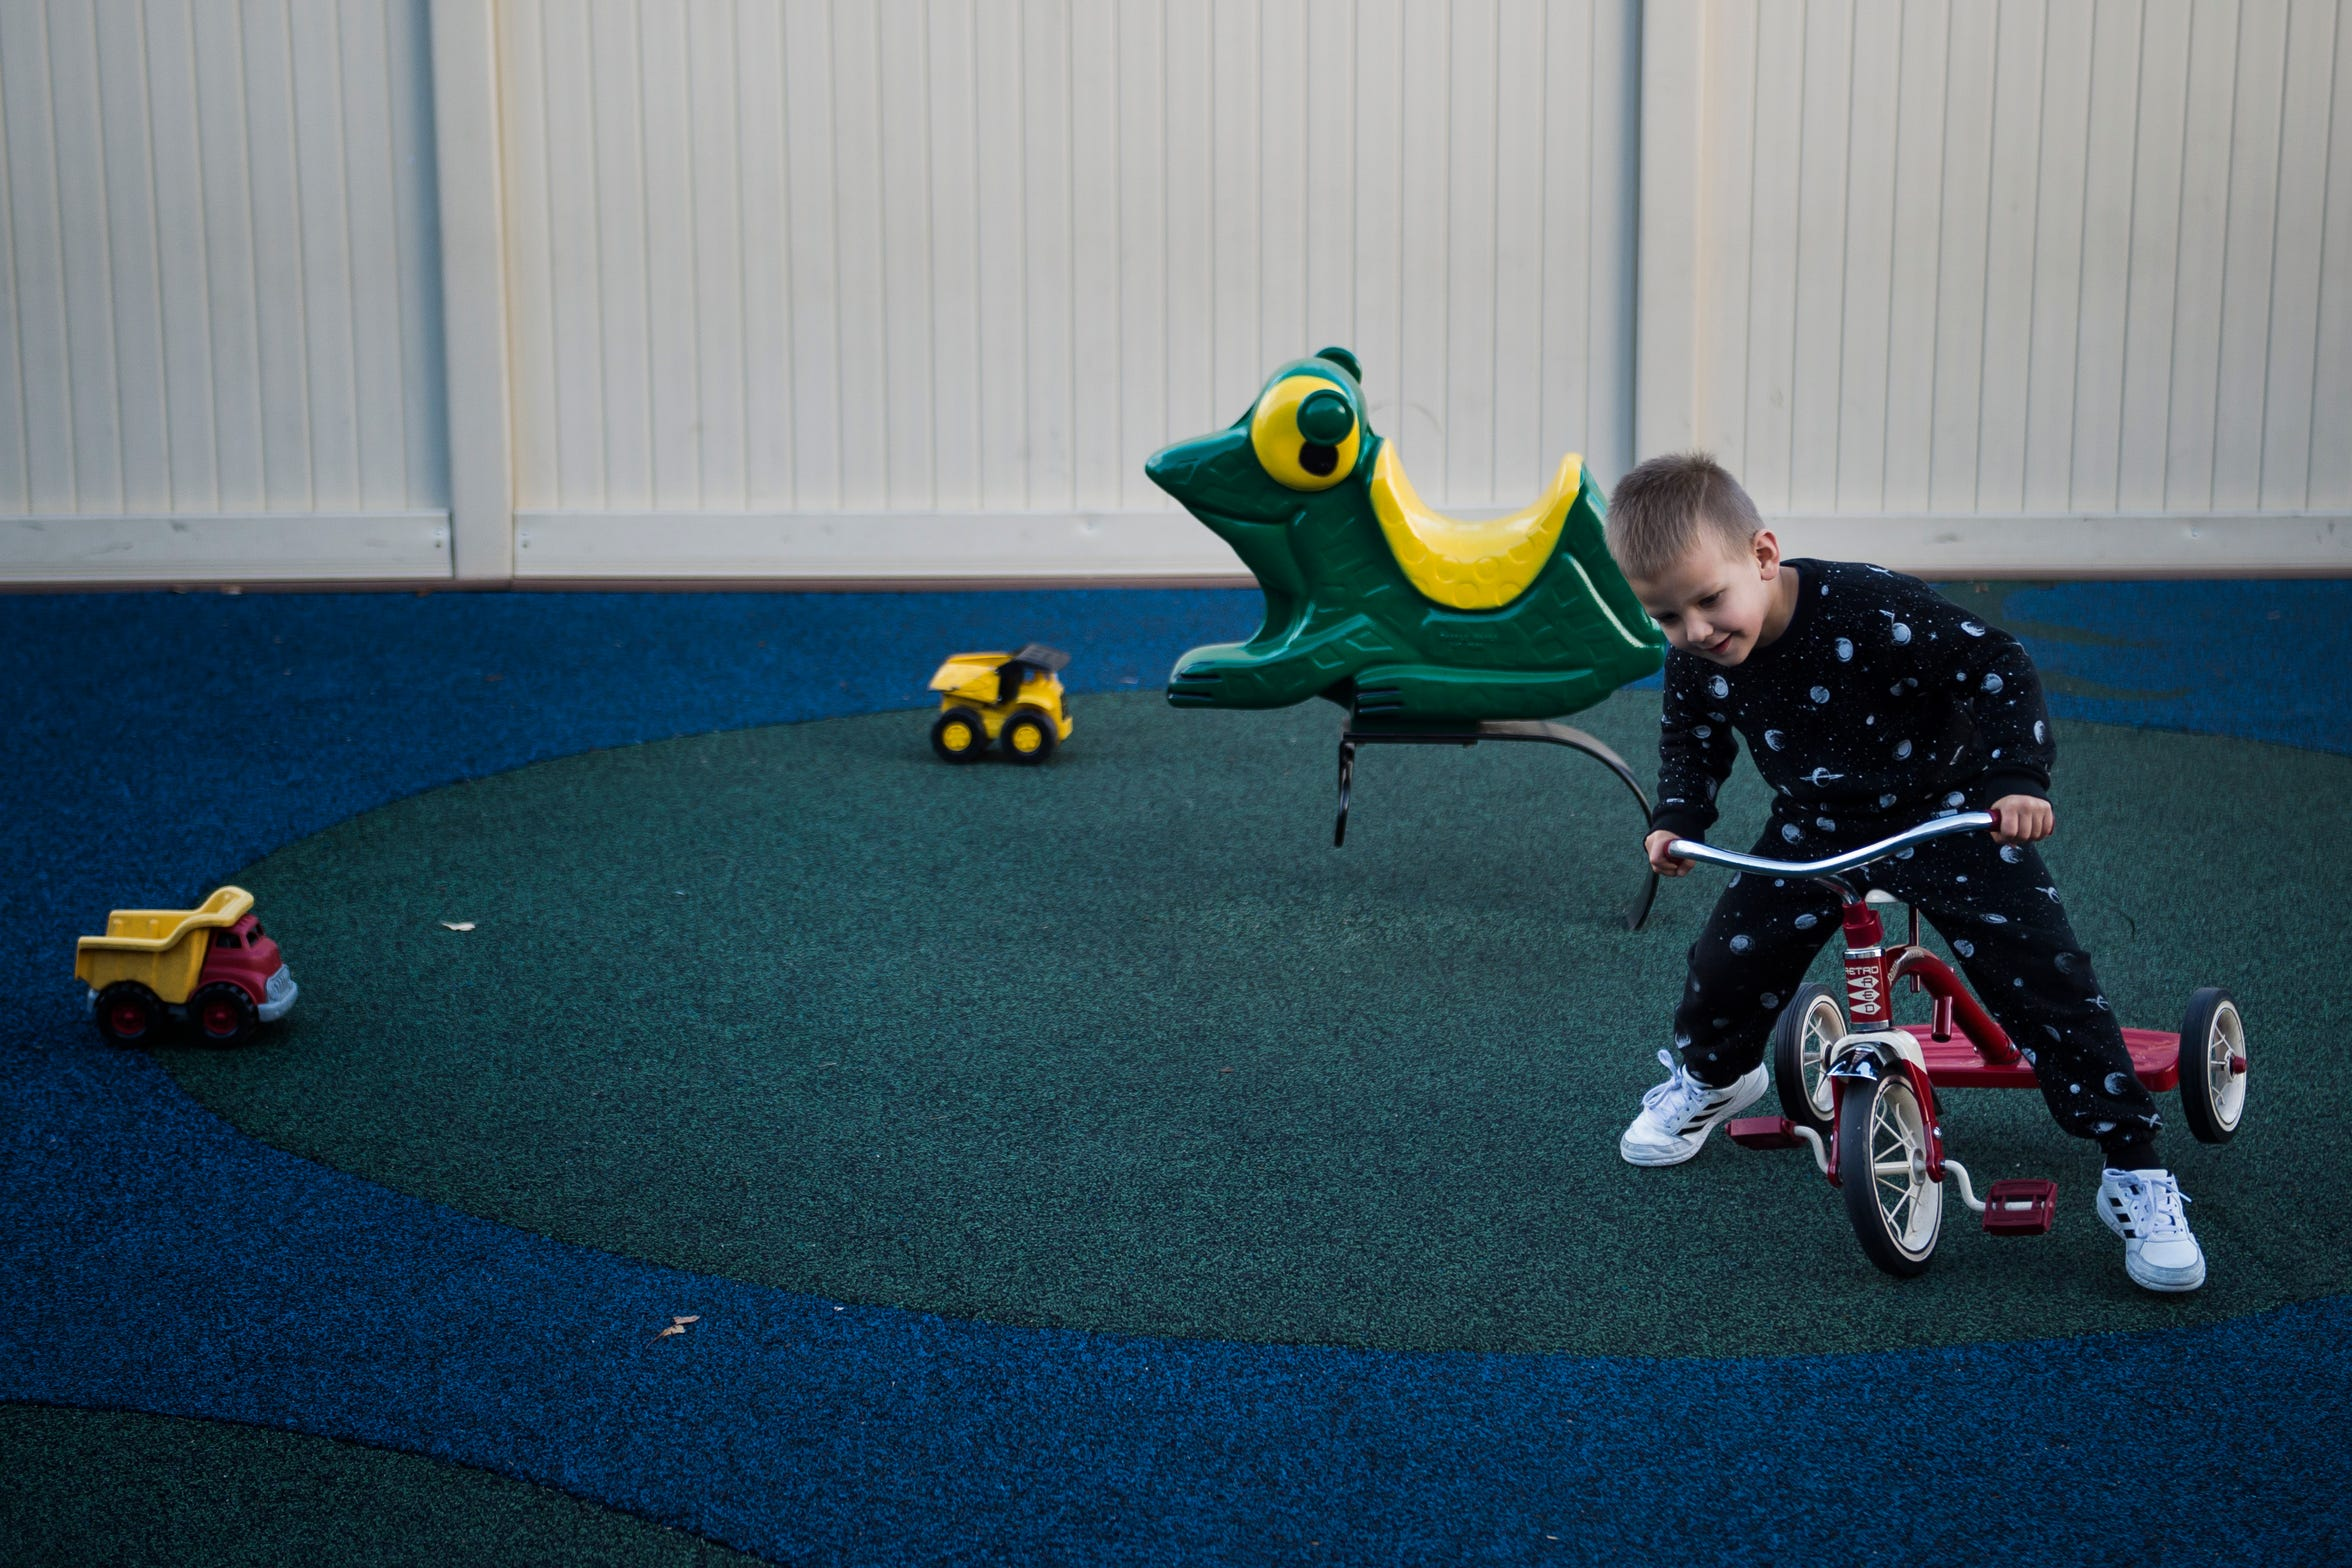 Did Barraza, 4, keeps a tricycle uprights during a recess time on Thursday, Nov. 15, 2018, at The Learning Experience child development center in Fort Collins, Colo.